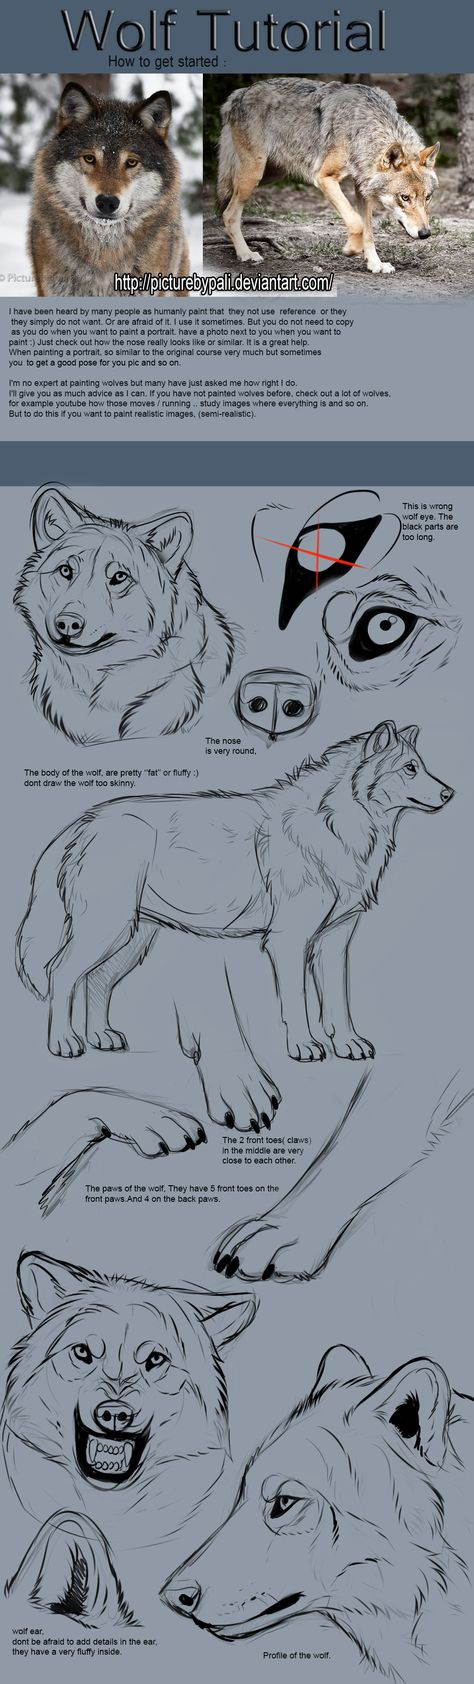 Wolf Tutorial by TheMysticWolf on @DeviantArt